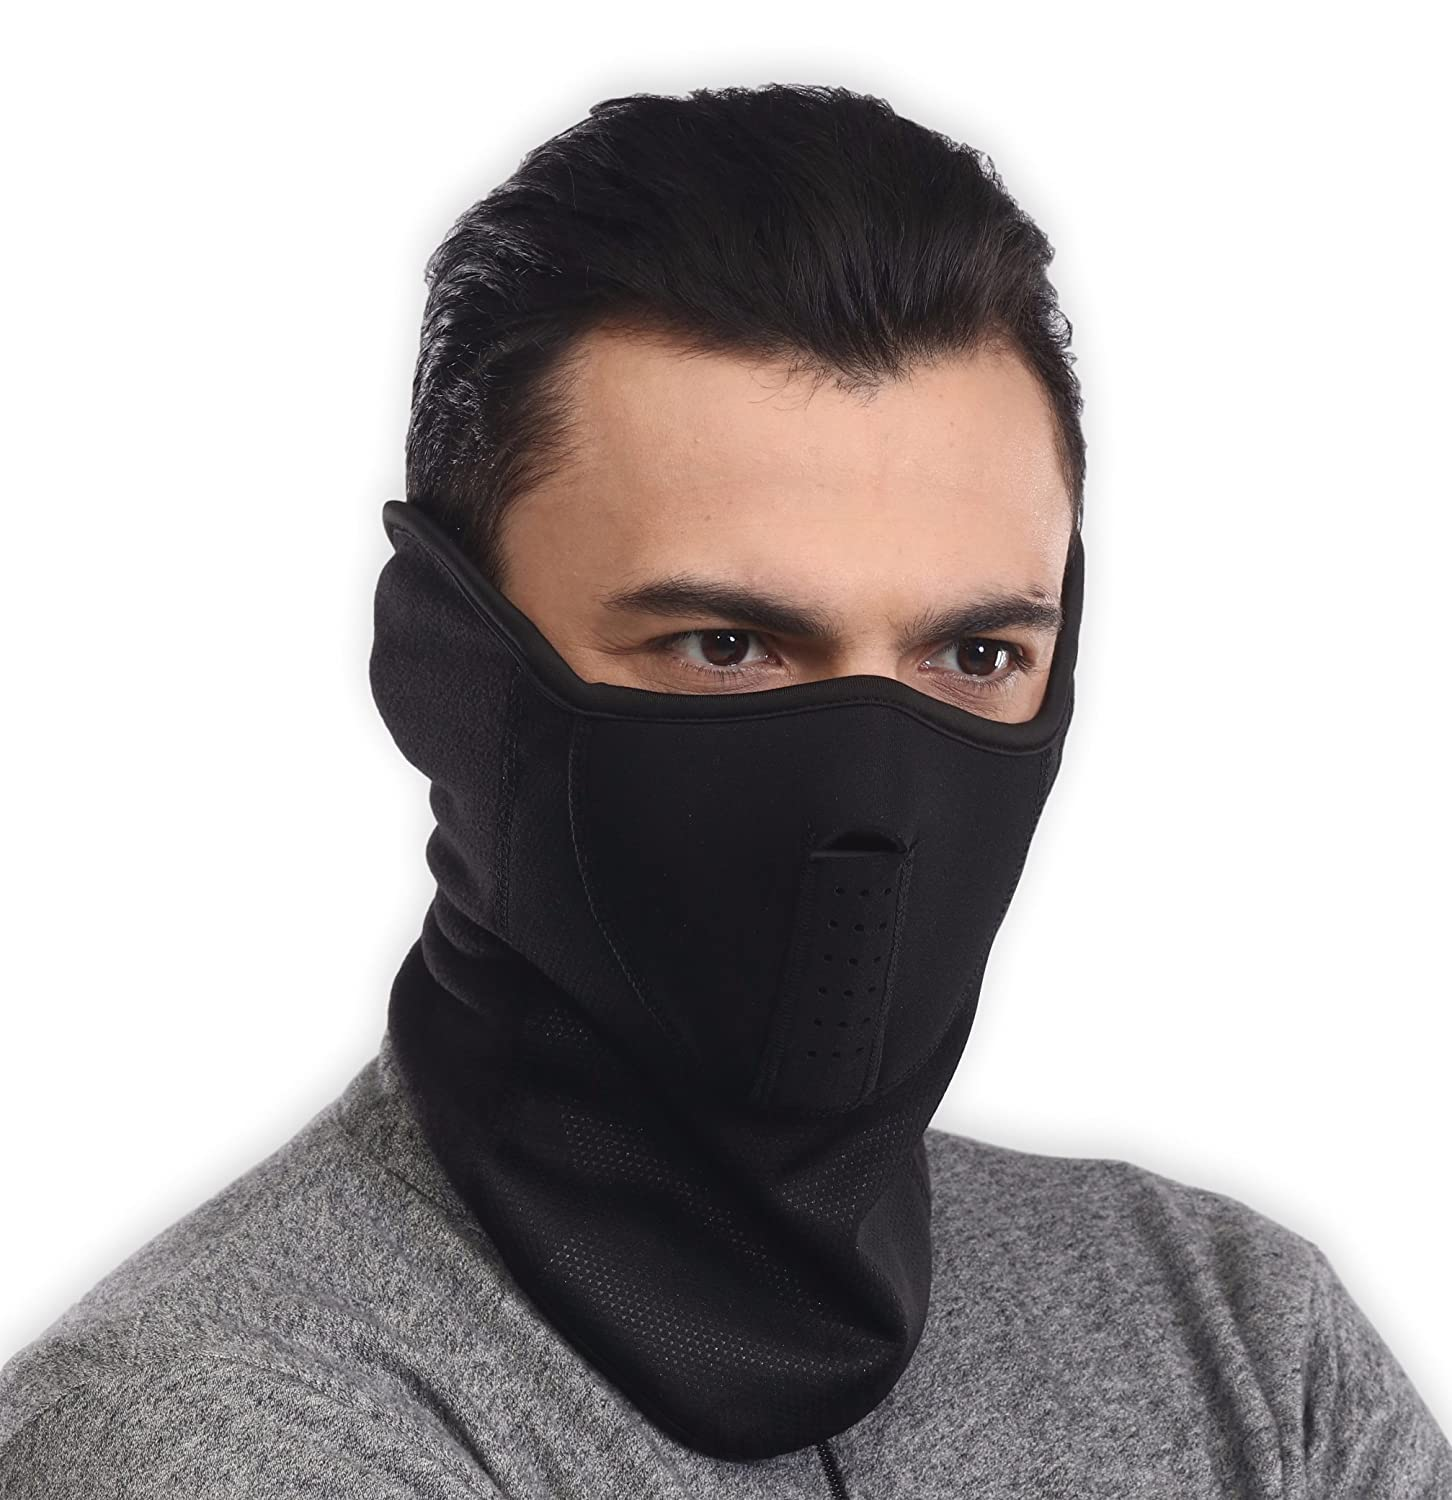 Tough Headwear Neoprene Ski Mask - Tactical Winter Face Mask - Perfect for Skiing, Snowboarding & Motorcycling